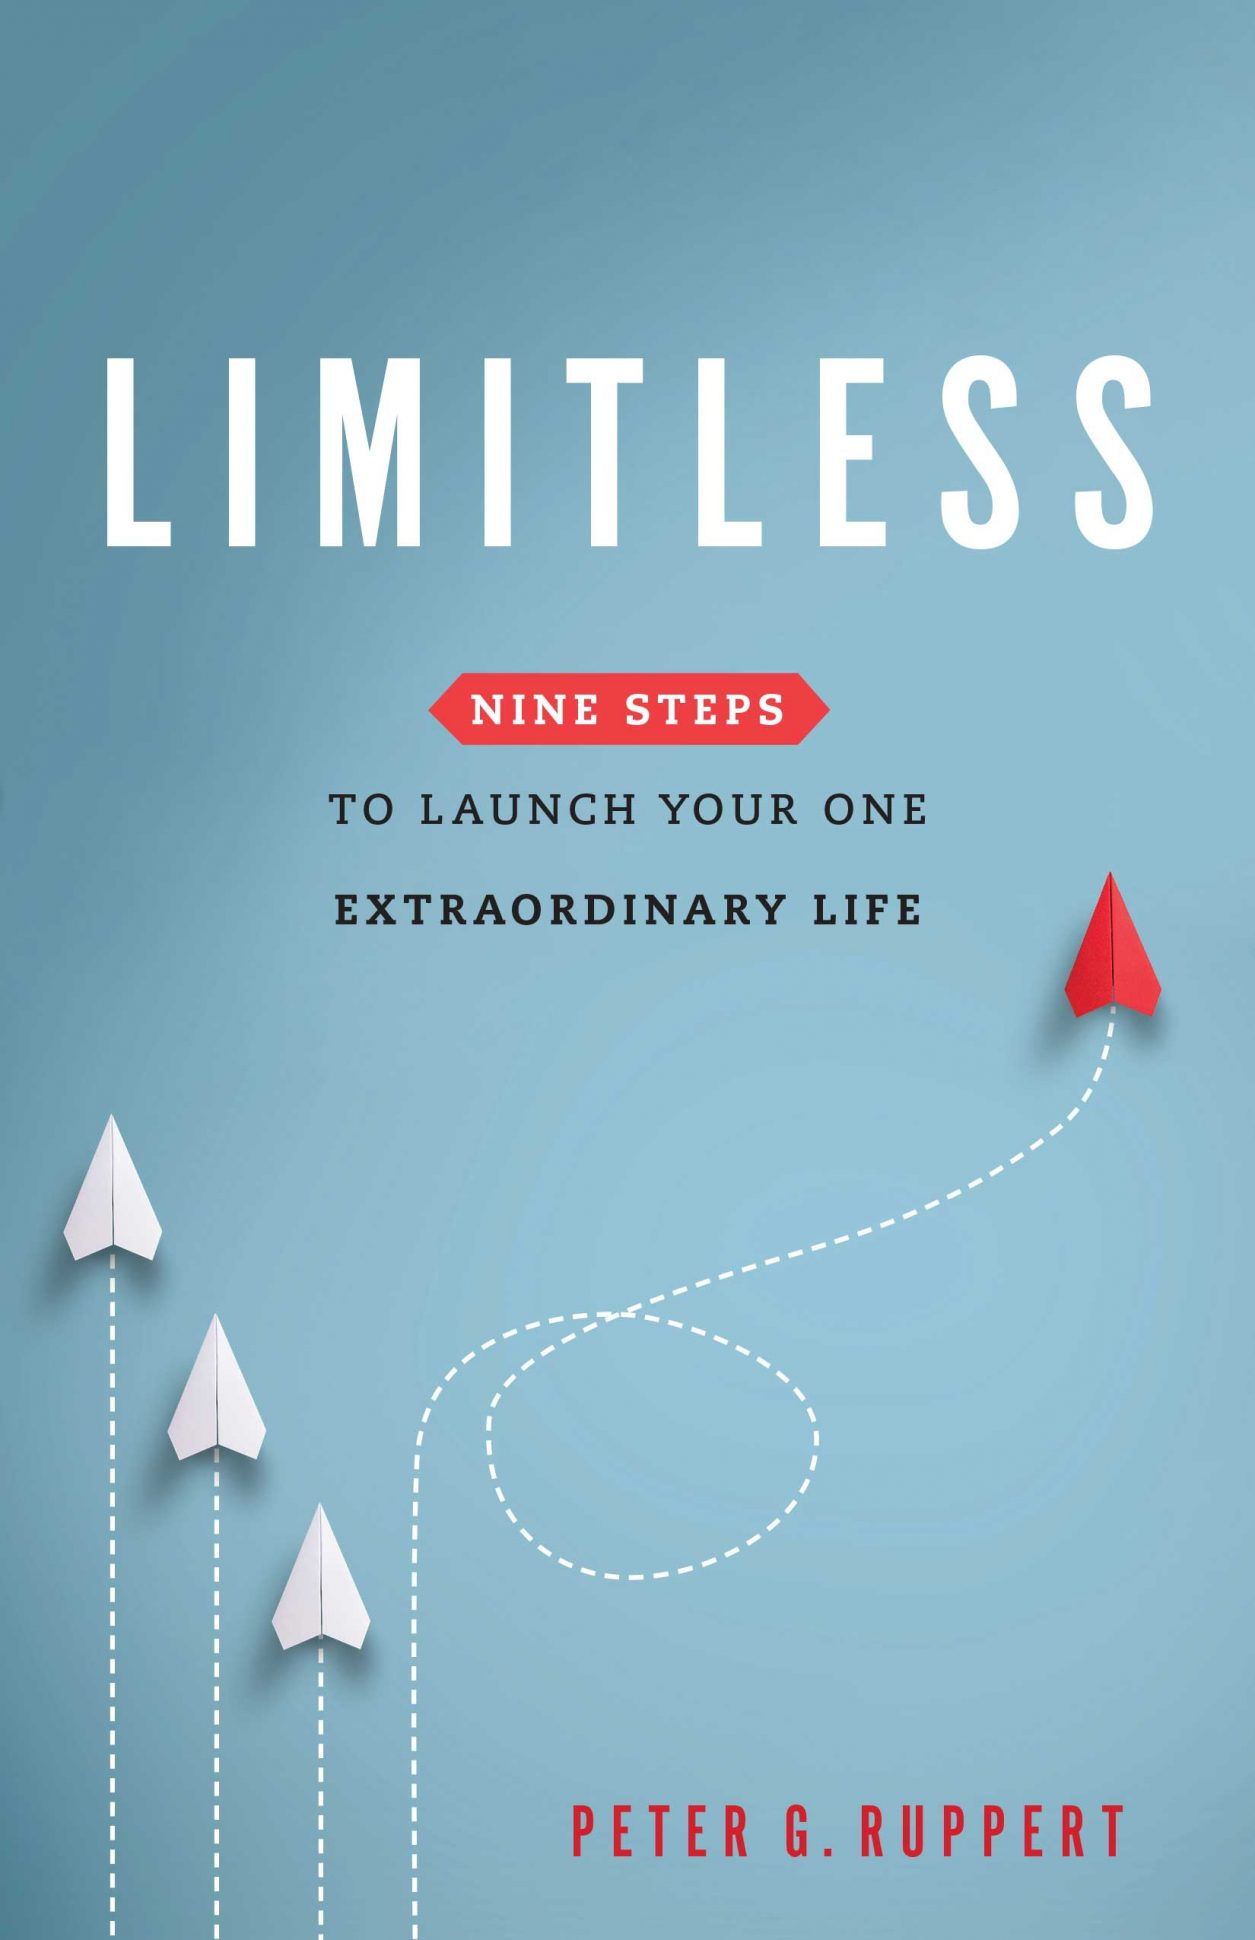 Limitless: Nine Steps to Launch Your One Extraordinary Life